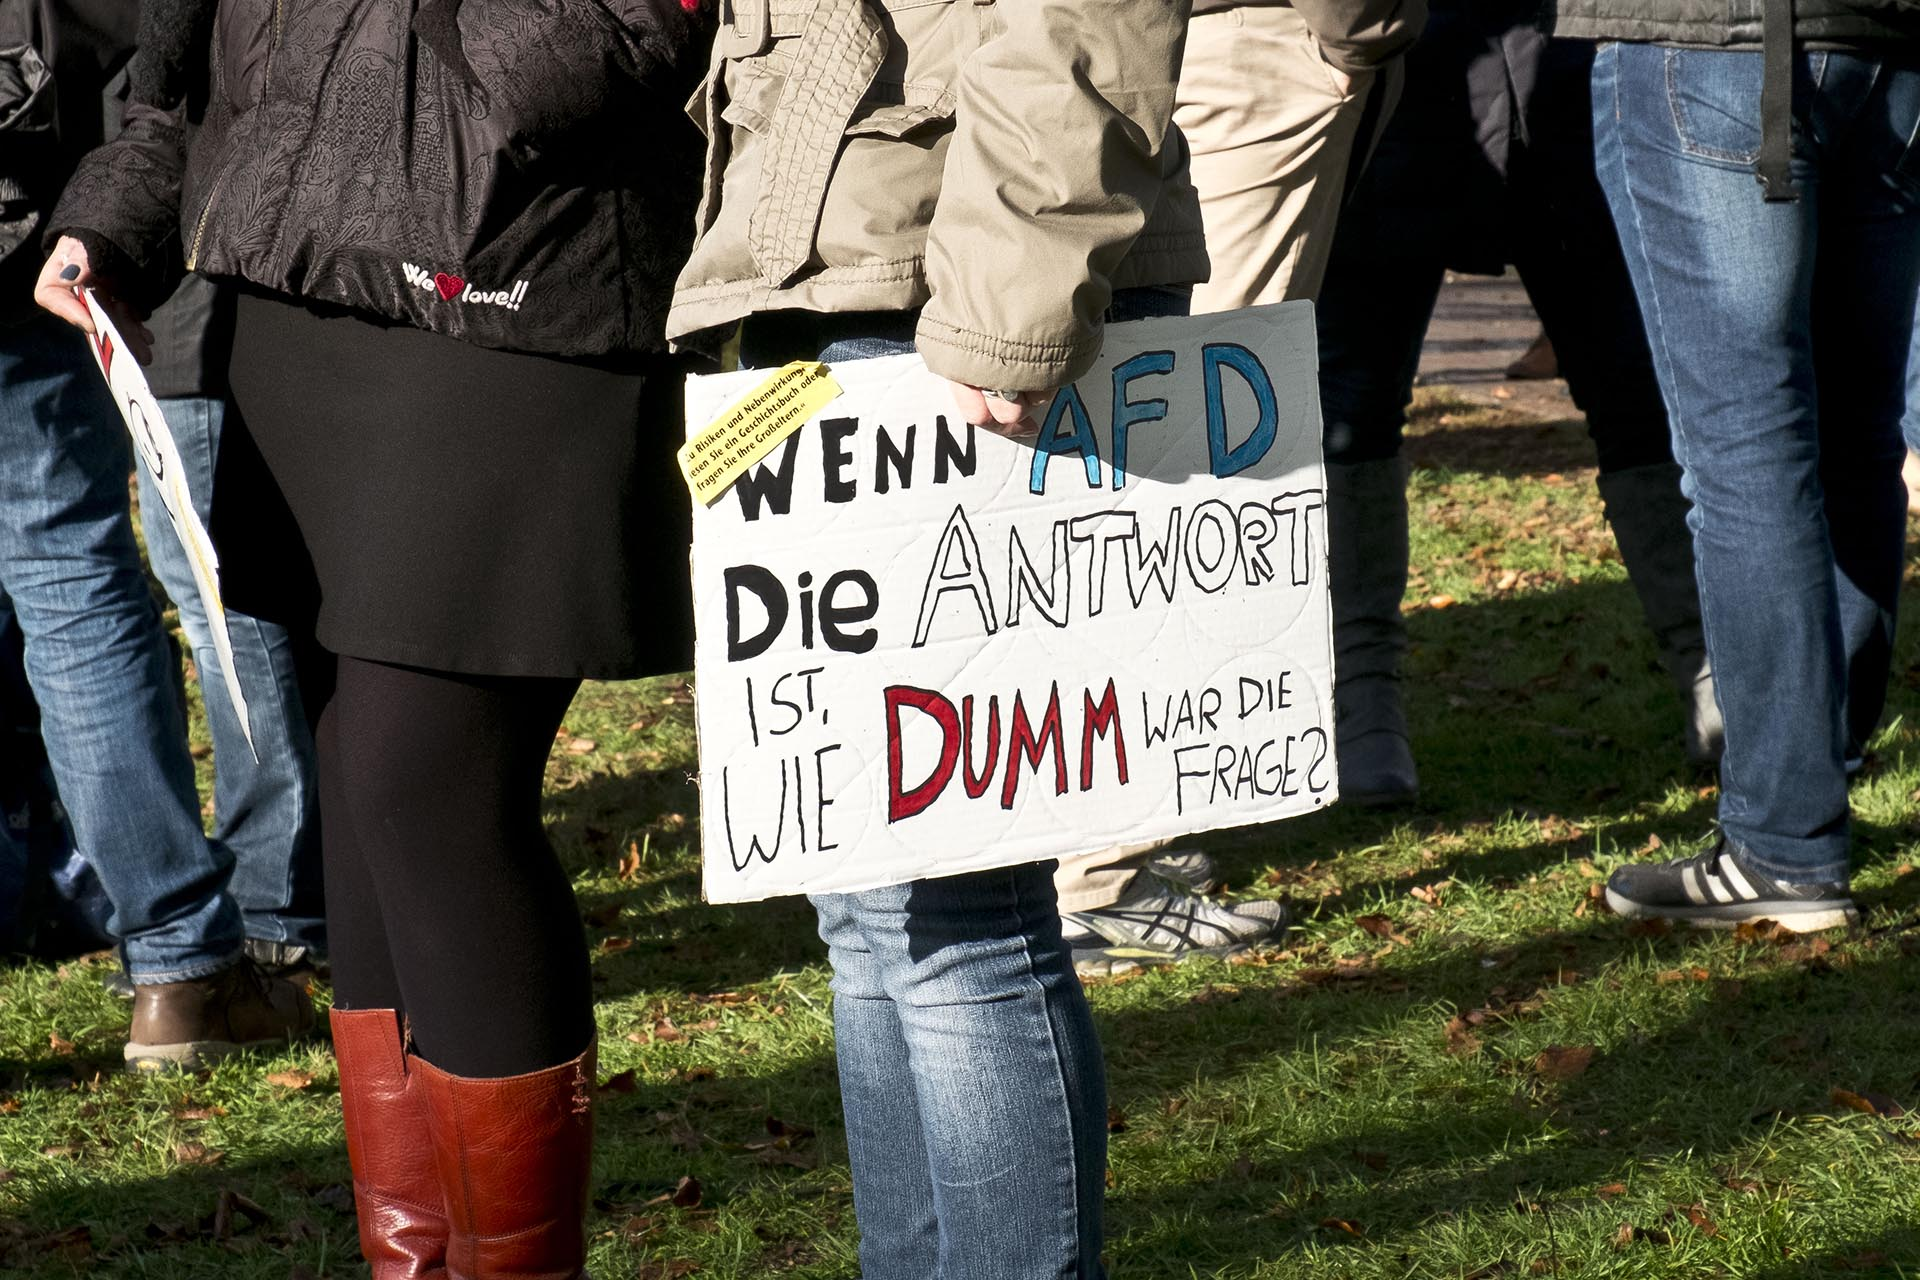 antiafd2146